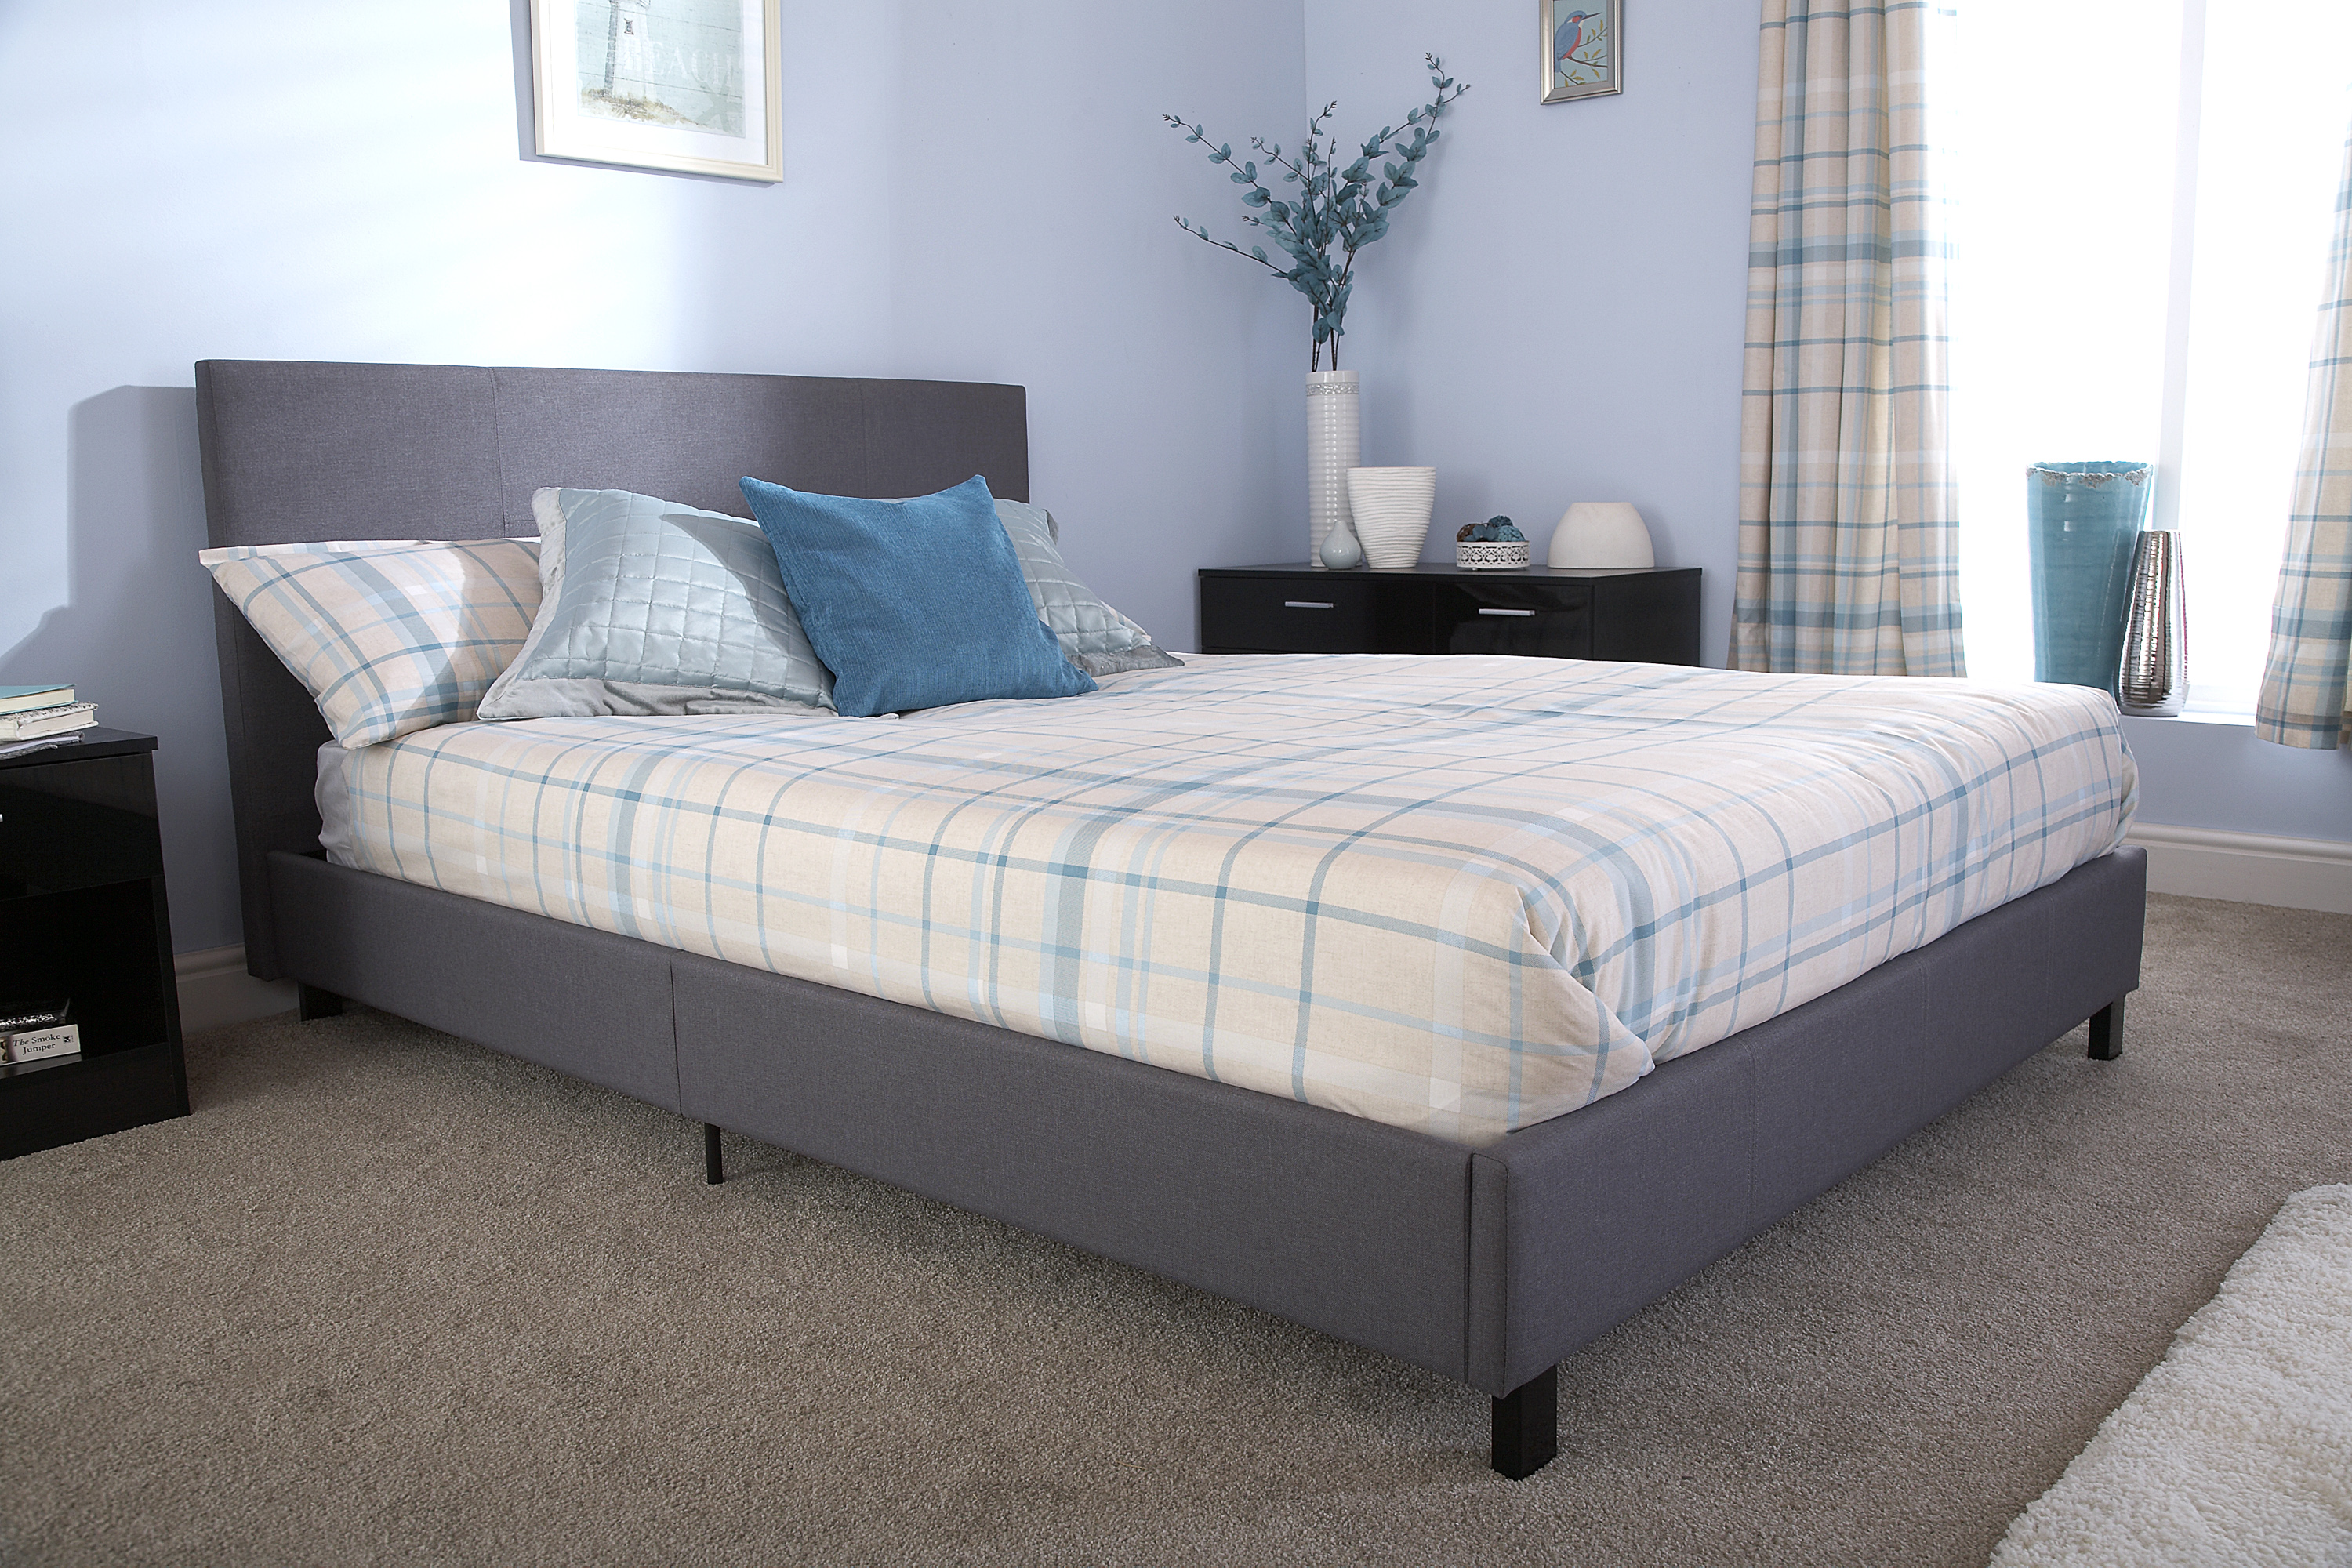 sterling studio free bed contemporary by garden upholstered overstock fabric today product home creek baxton laurel shipping